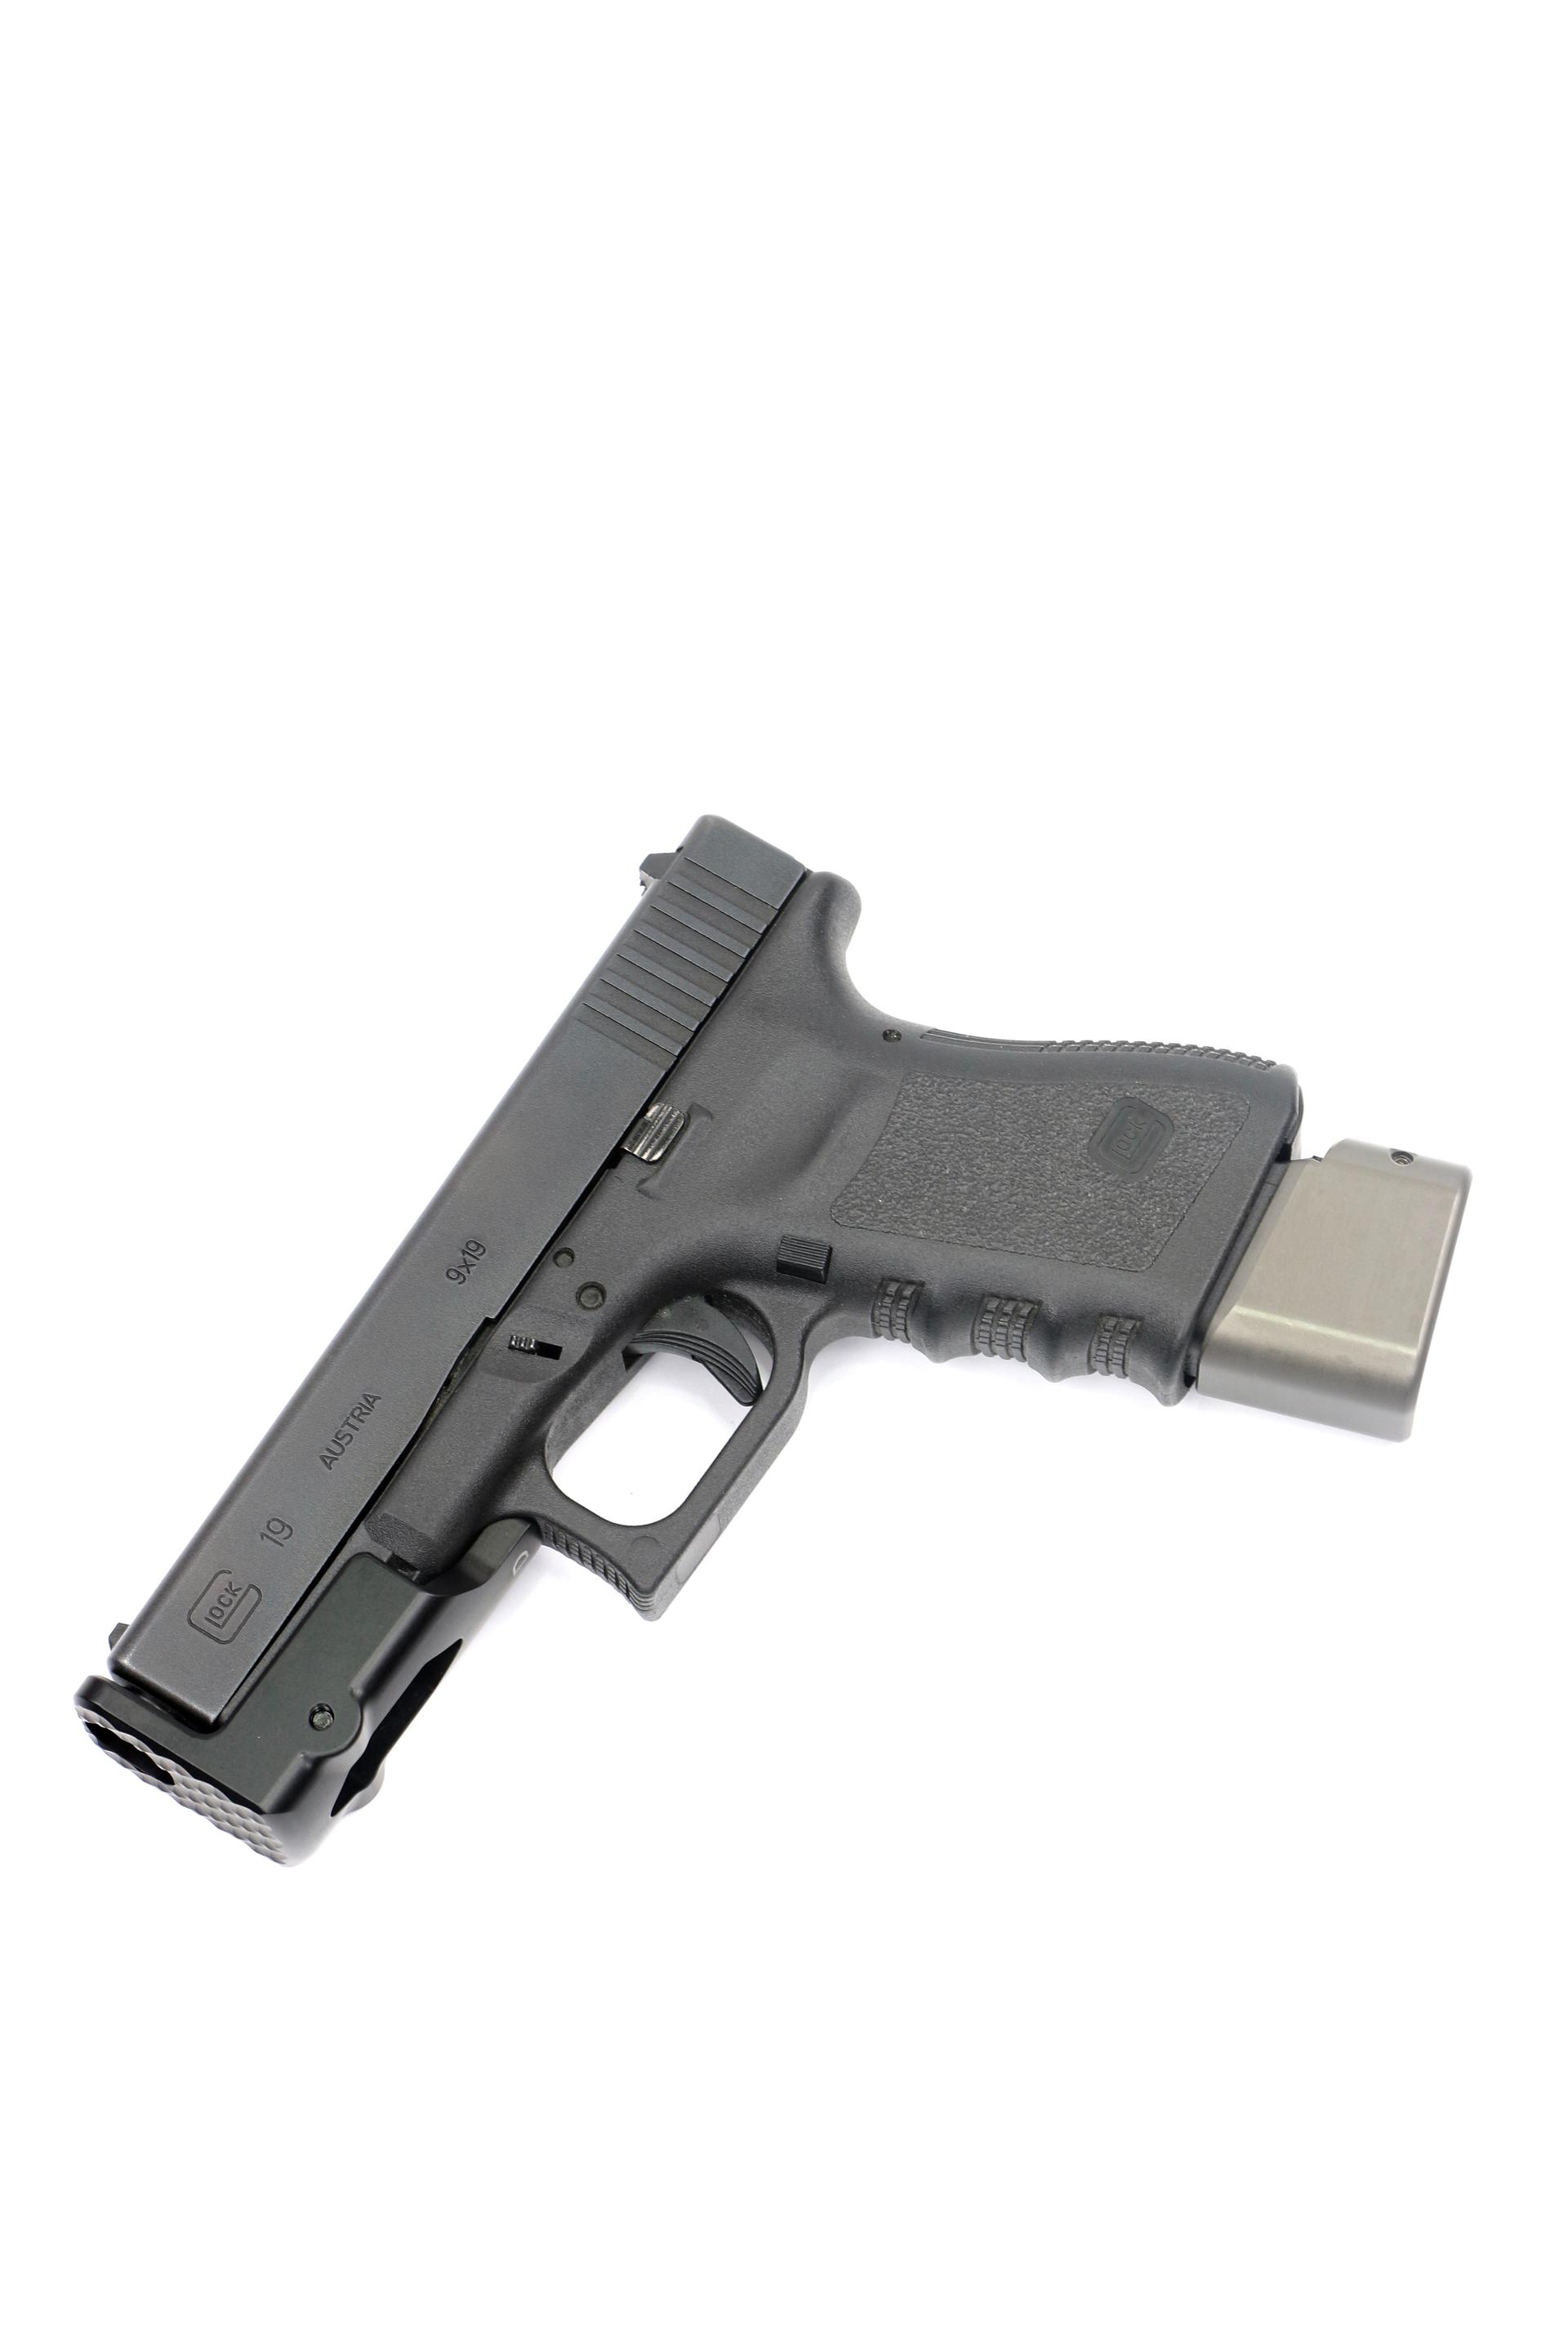 GLOCK STAND OFF DEVICE COMPACT SIZE